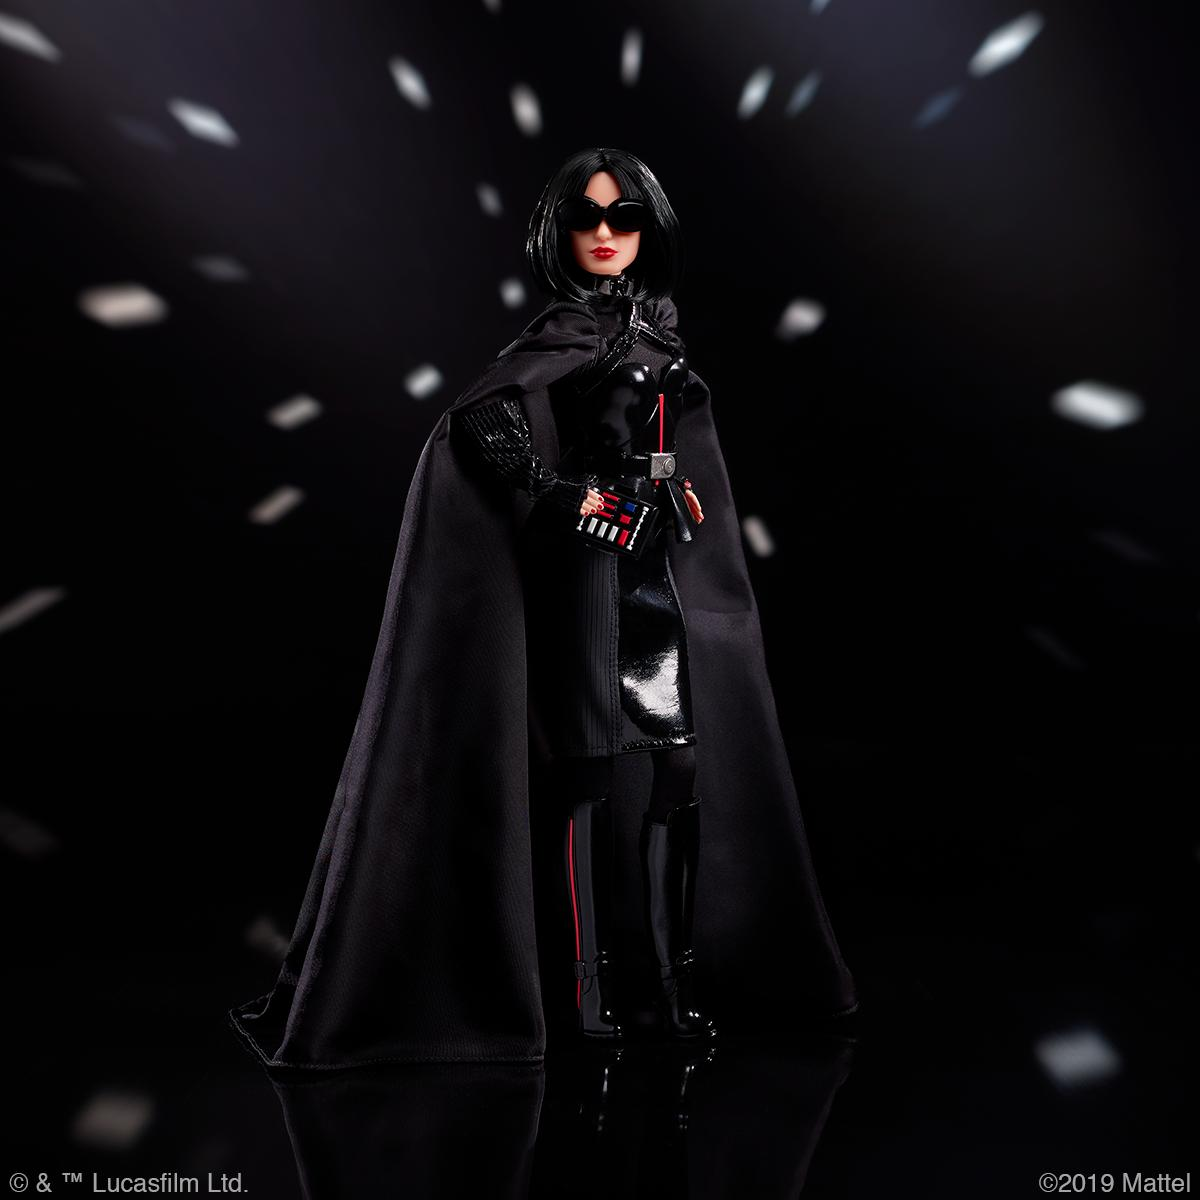 Star Wars Barbie Darth Vader Barbie gets into cosplay with new Star Wars line